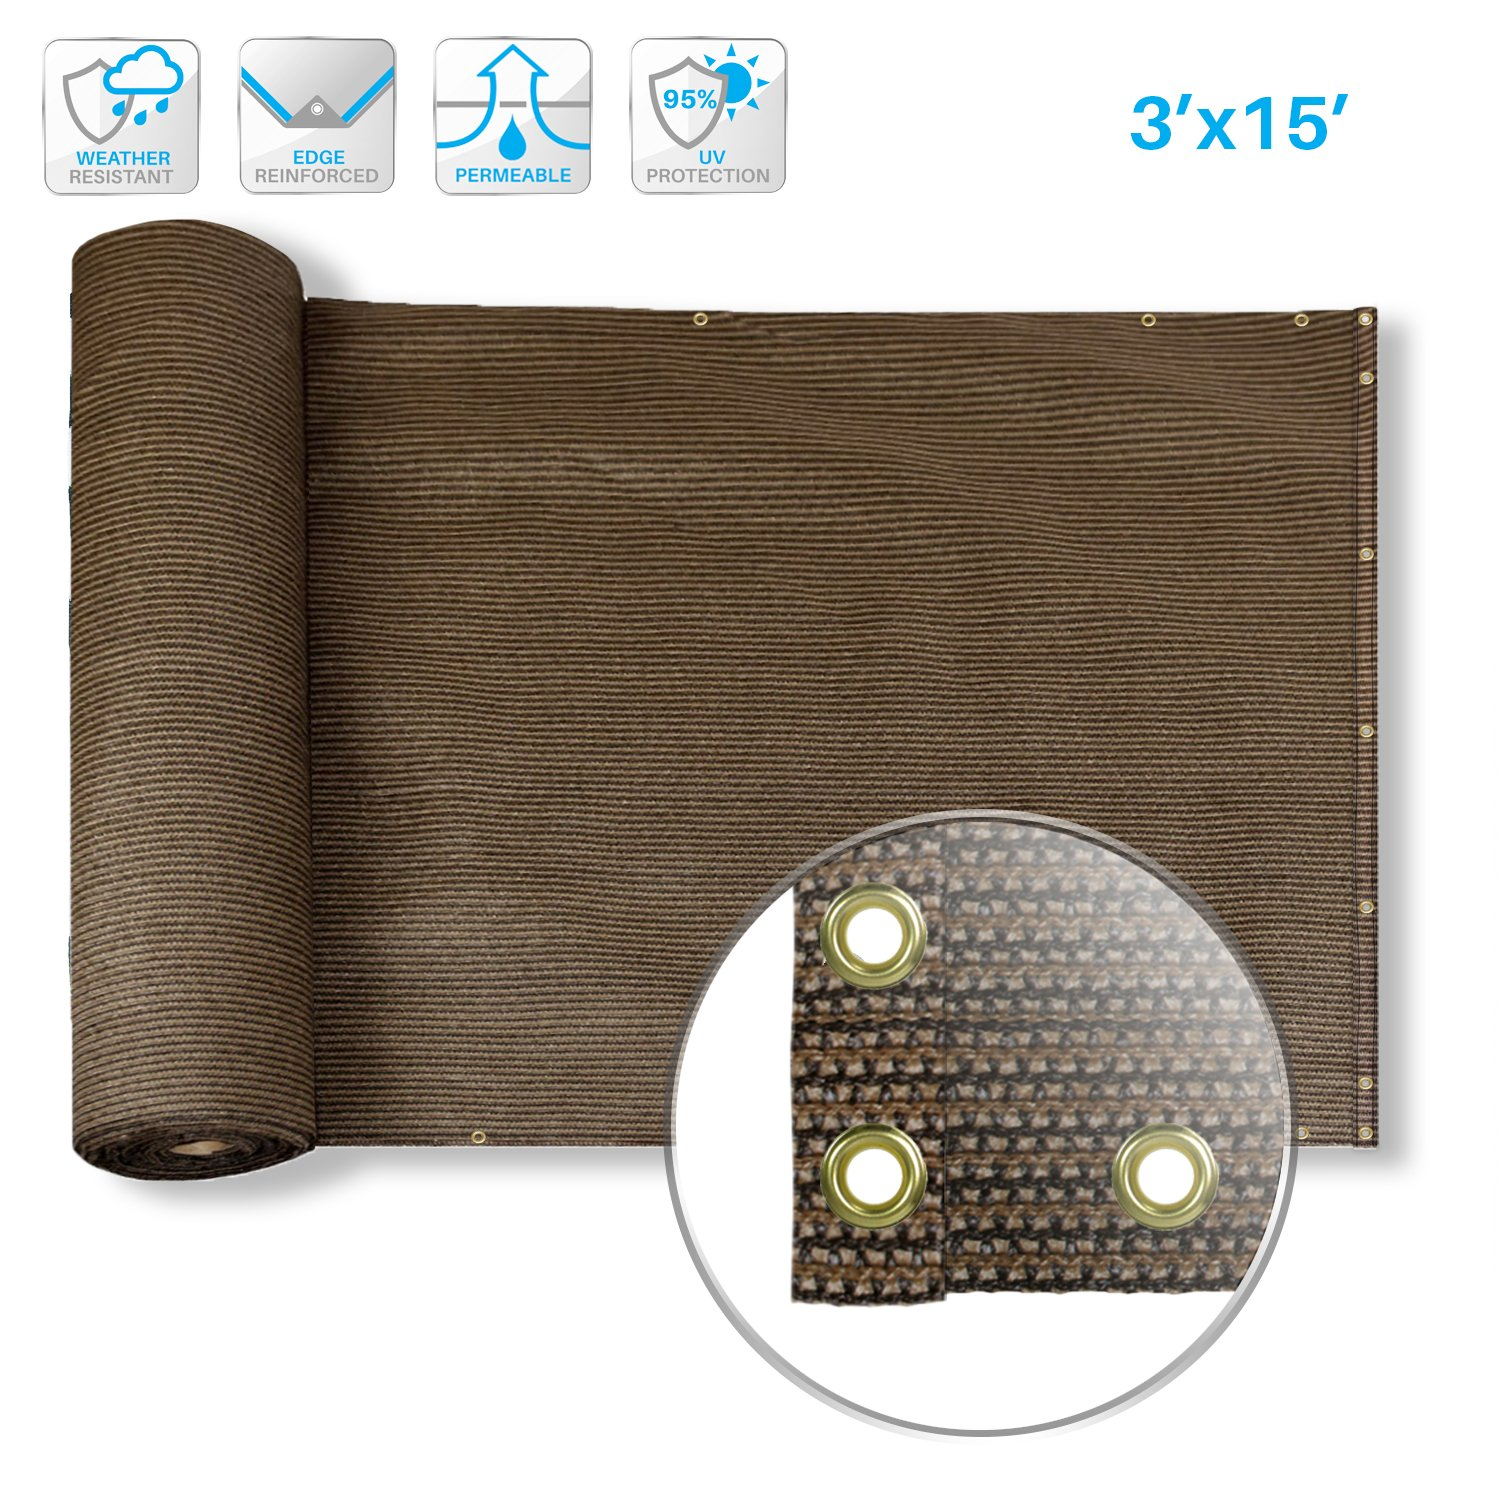 0112ed4e Amazon.com : Patio Deck Privacy Screen 3' x 15' Perfect for Outdoor,  Backyard, Balcony, Pool, Porch, Railiing, Gardening, Fence Shield Rails  Protection ...